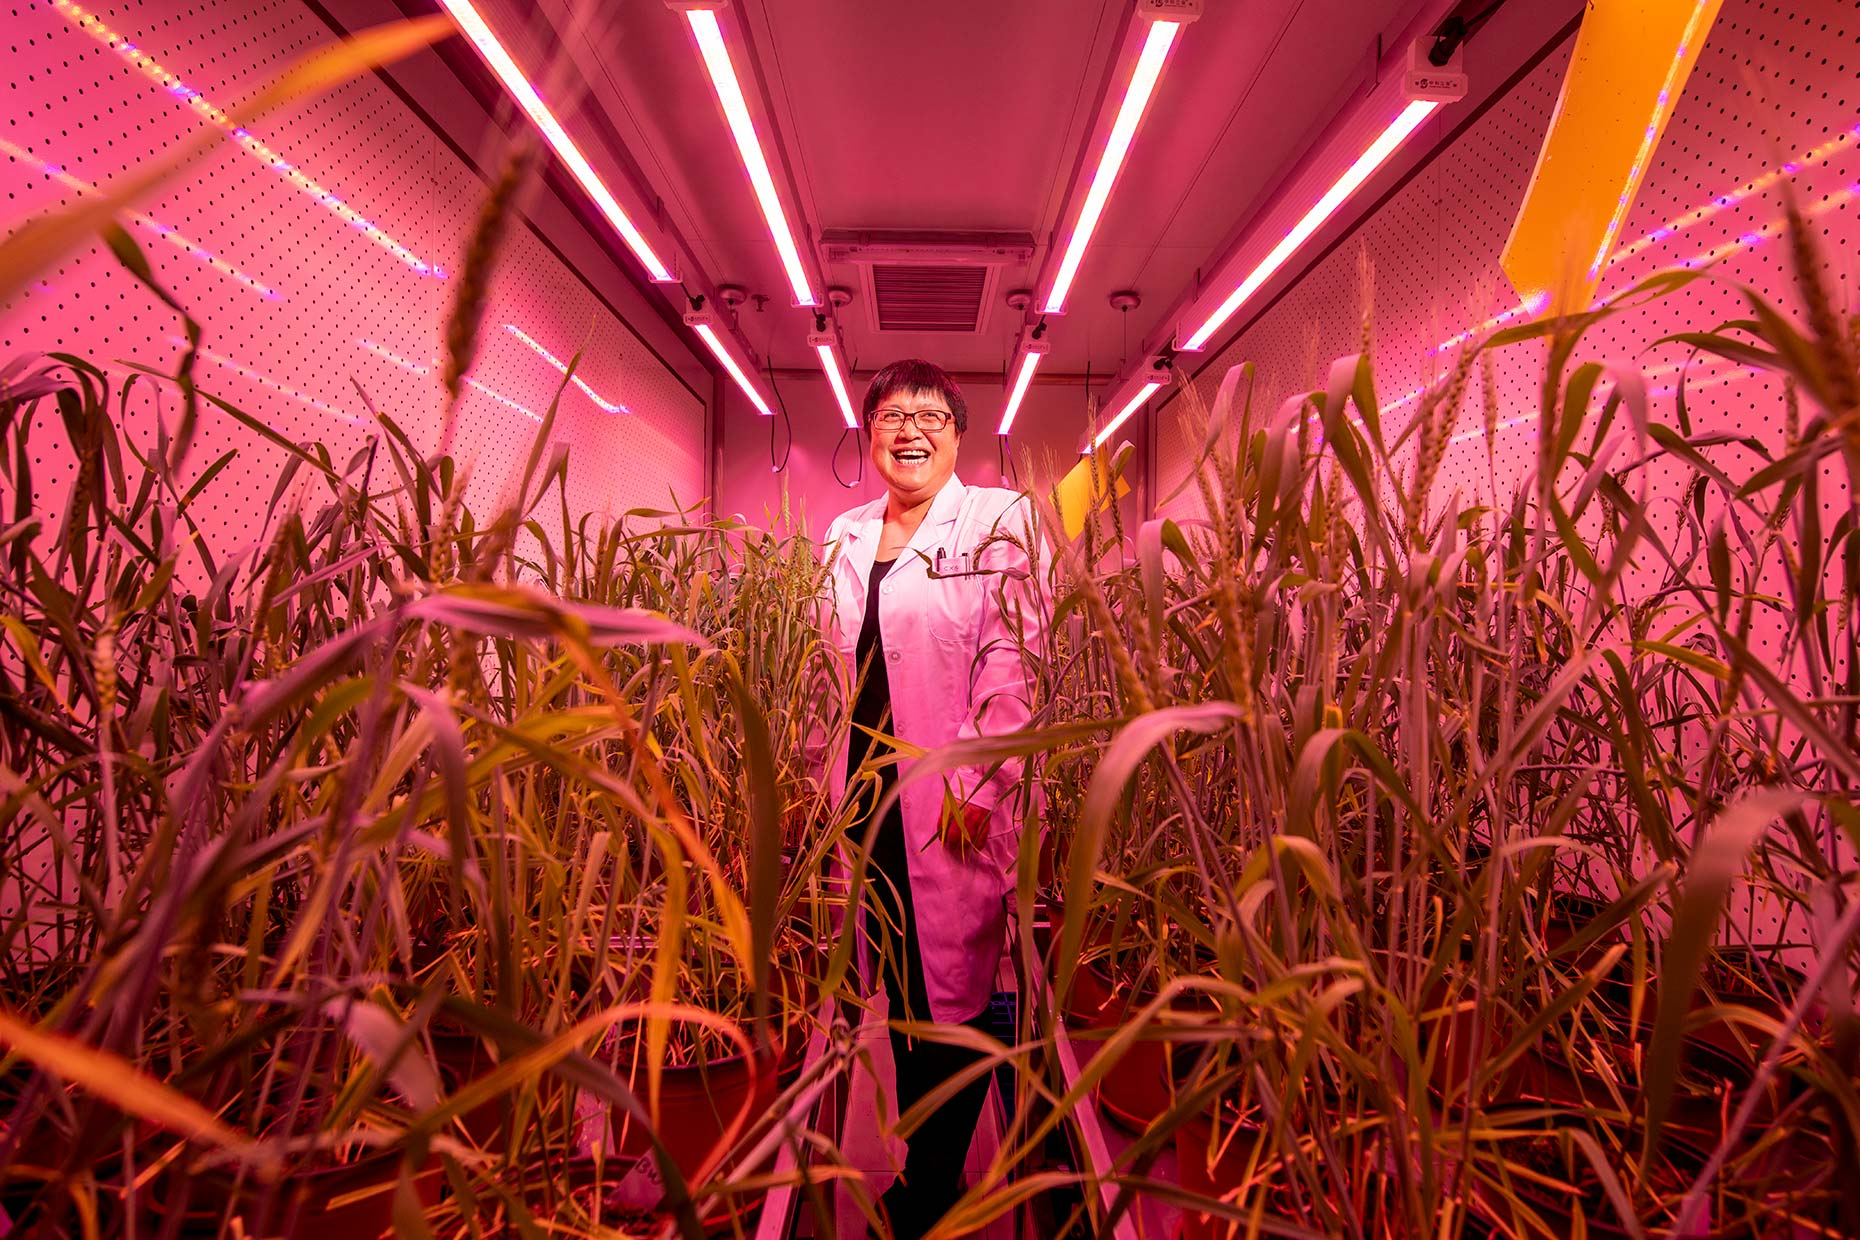 CRISPR China Beijing Stefen Chow Agriculture Science Gao Caixia